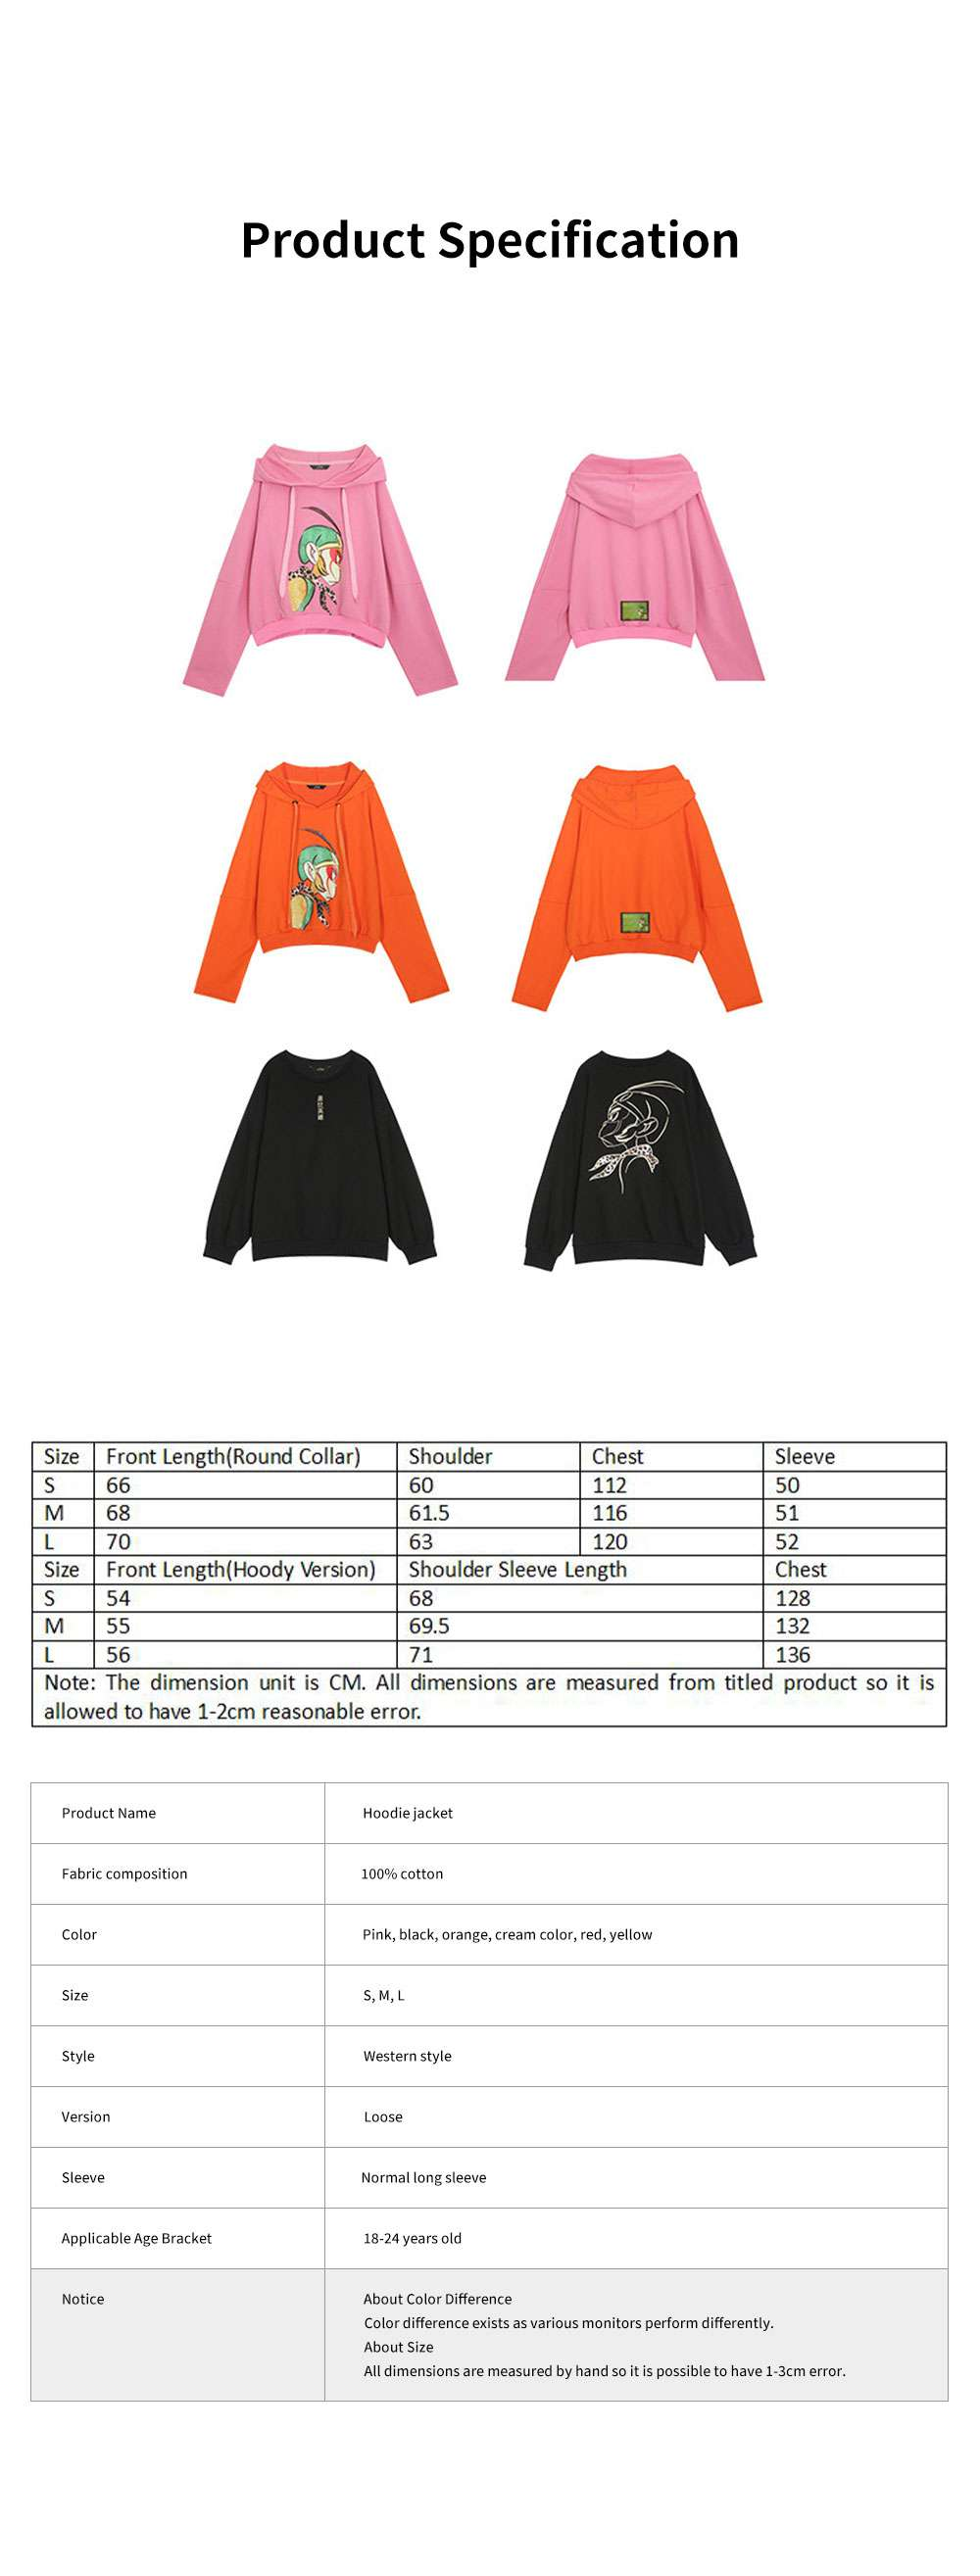 ELFSACK Embroidery Super Hero Hoodie Jacket Fashionable Long Sleeve Coat for Lady Wear Cotton Hoodie Jacket Spring Autumn Winter 6